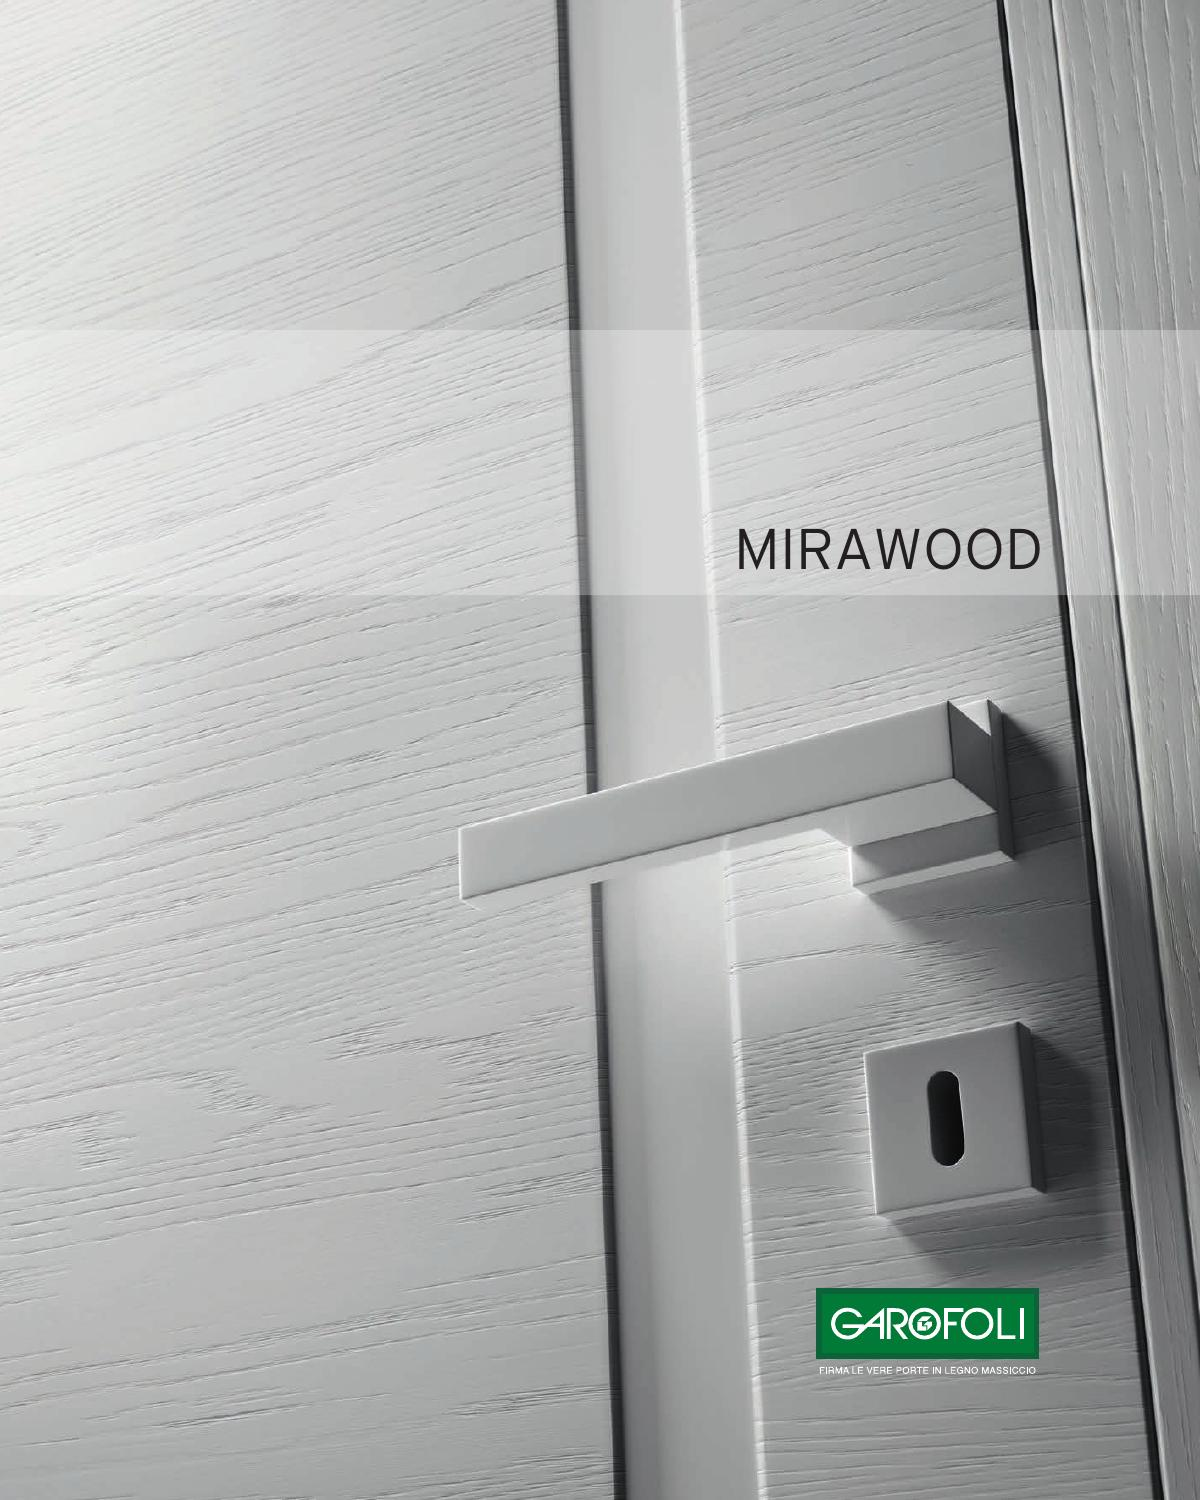 garofoli mirawood collection by garofoli group issuu